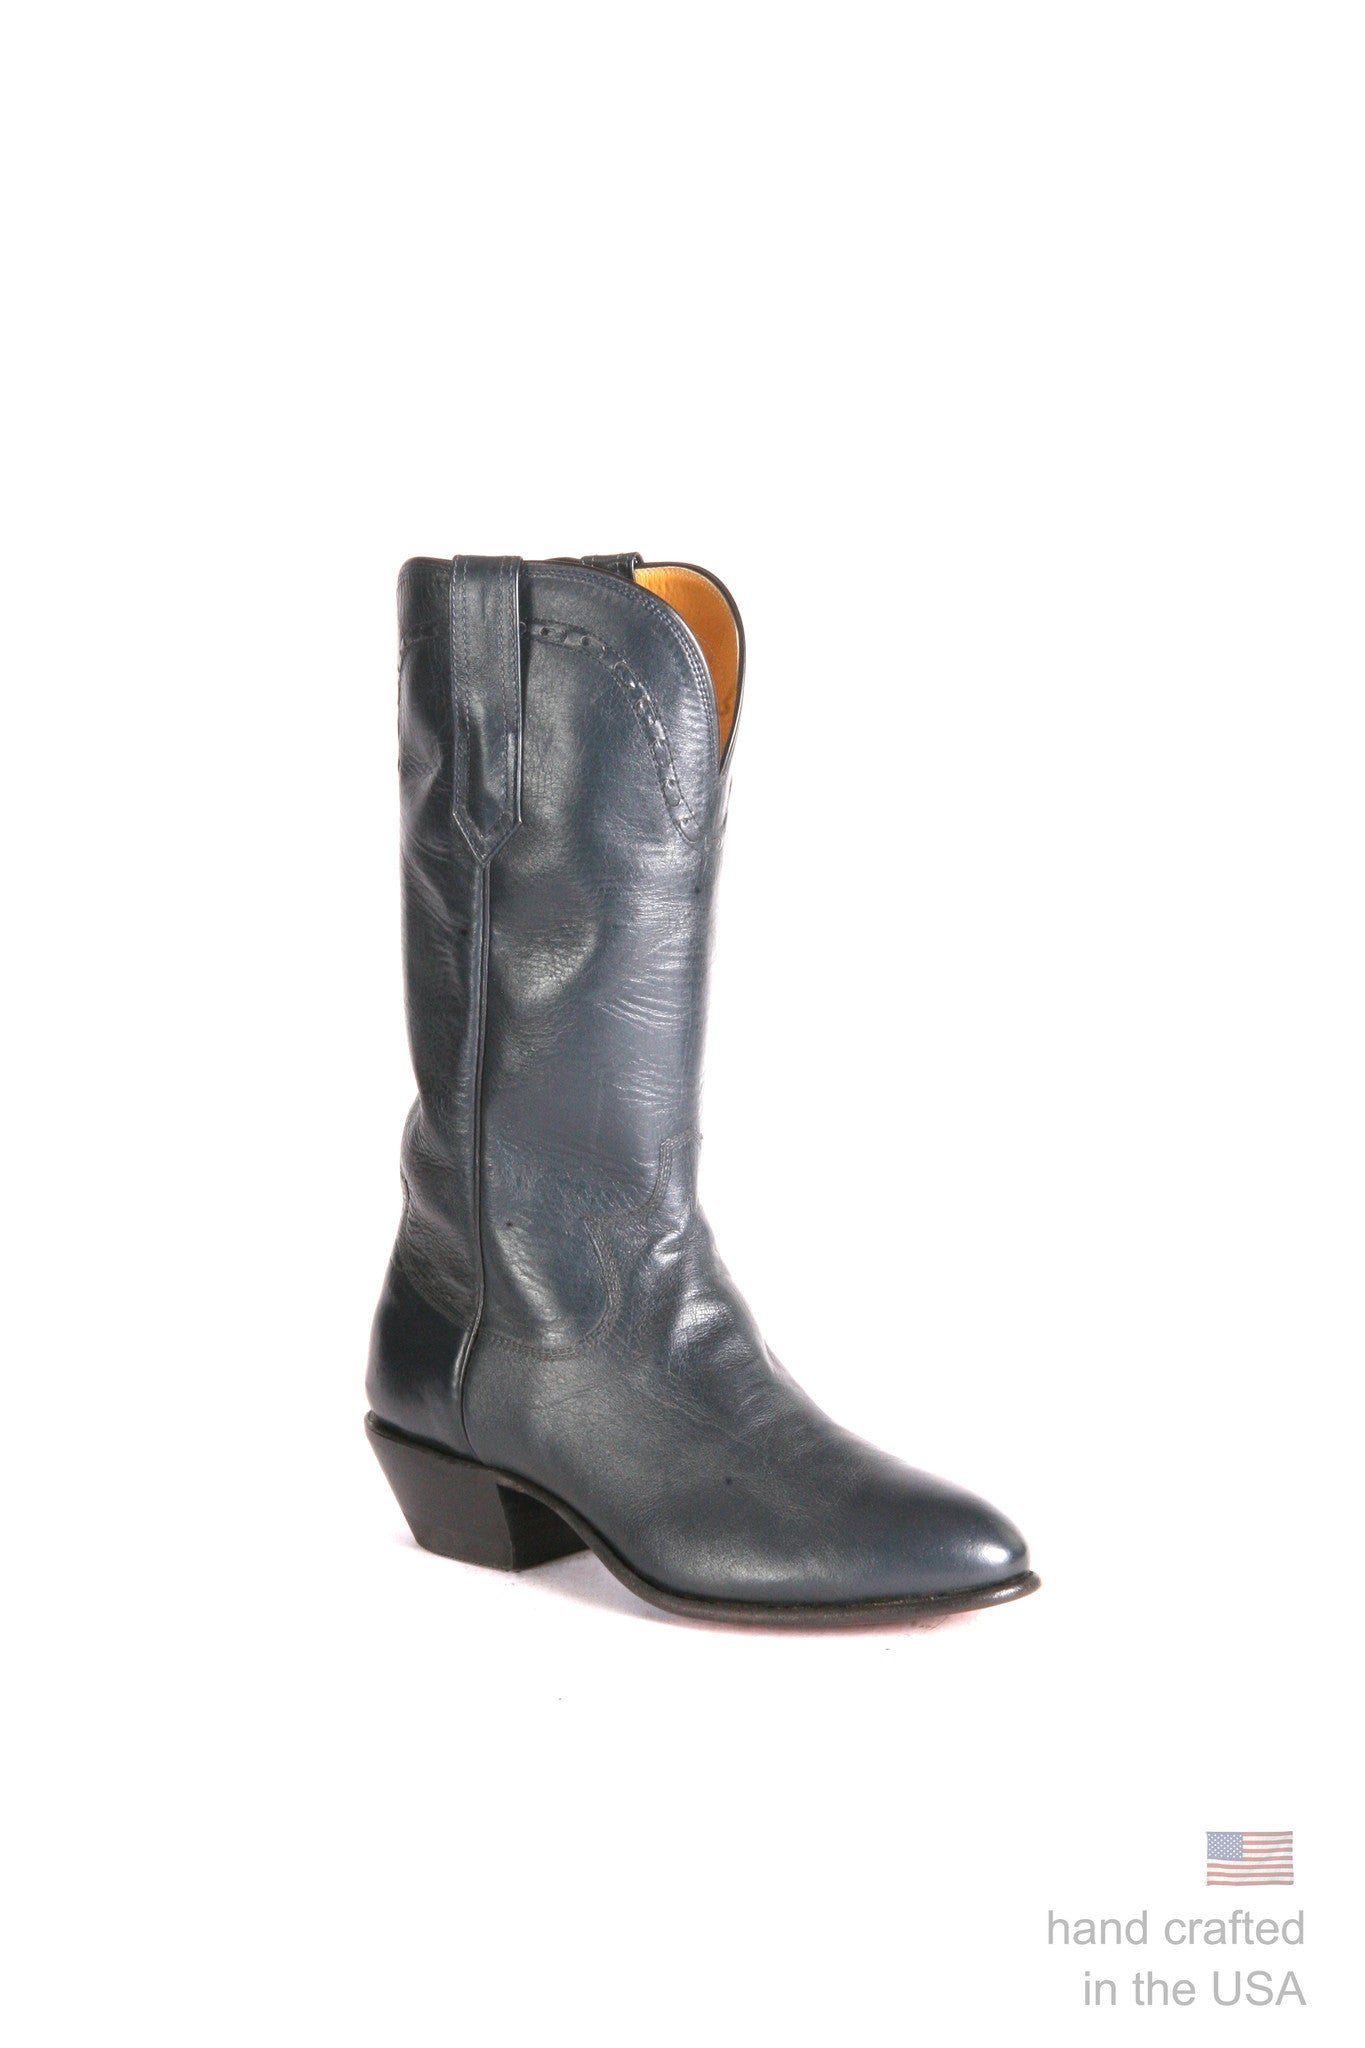 Singles: Boot 0188: Size 7D